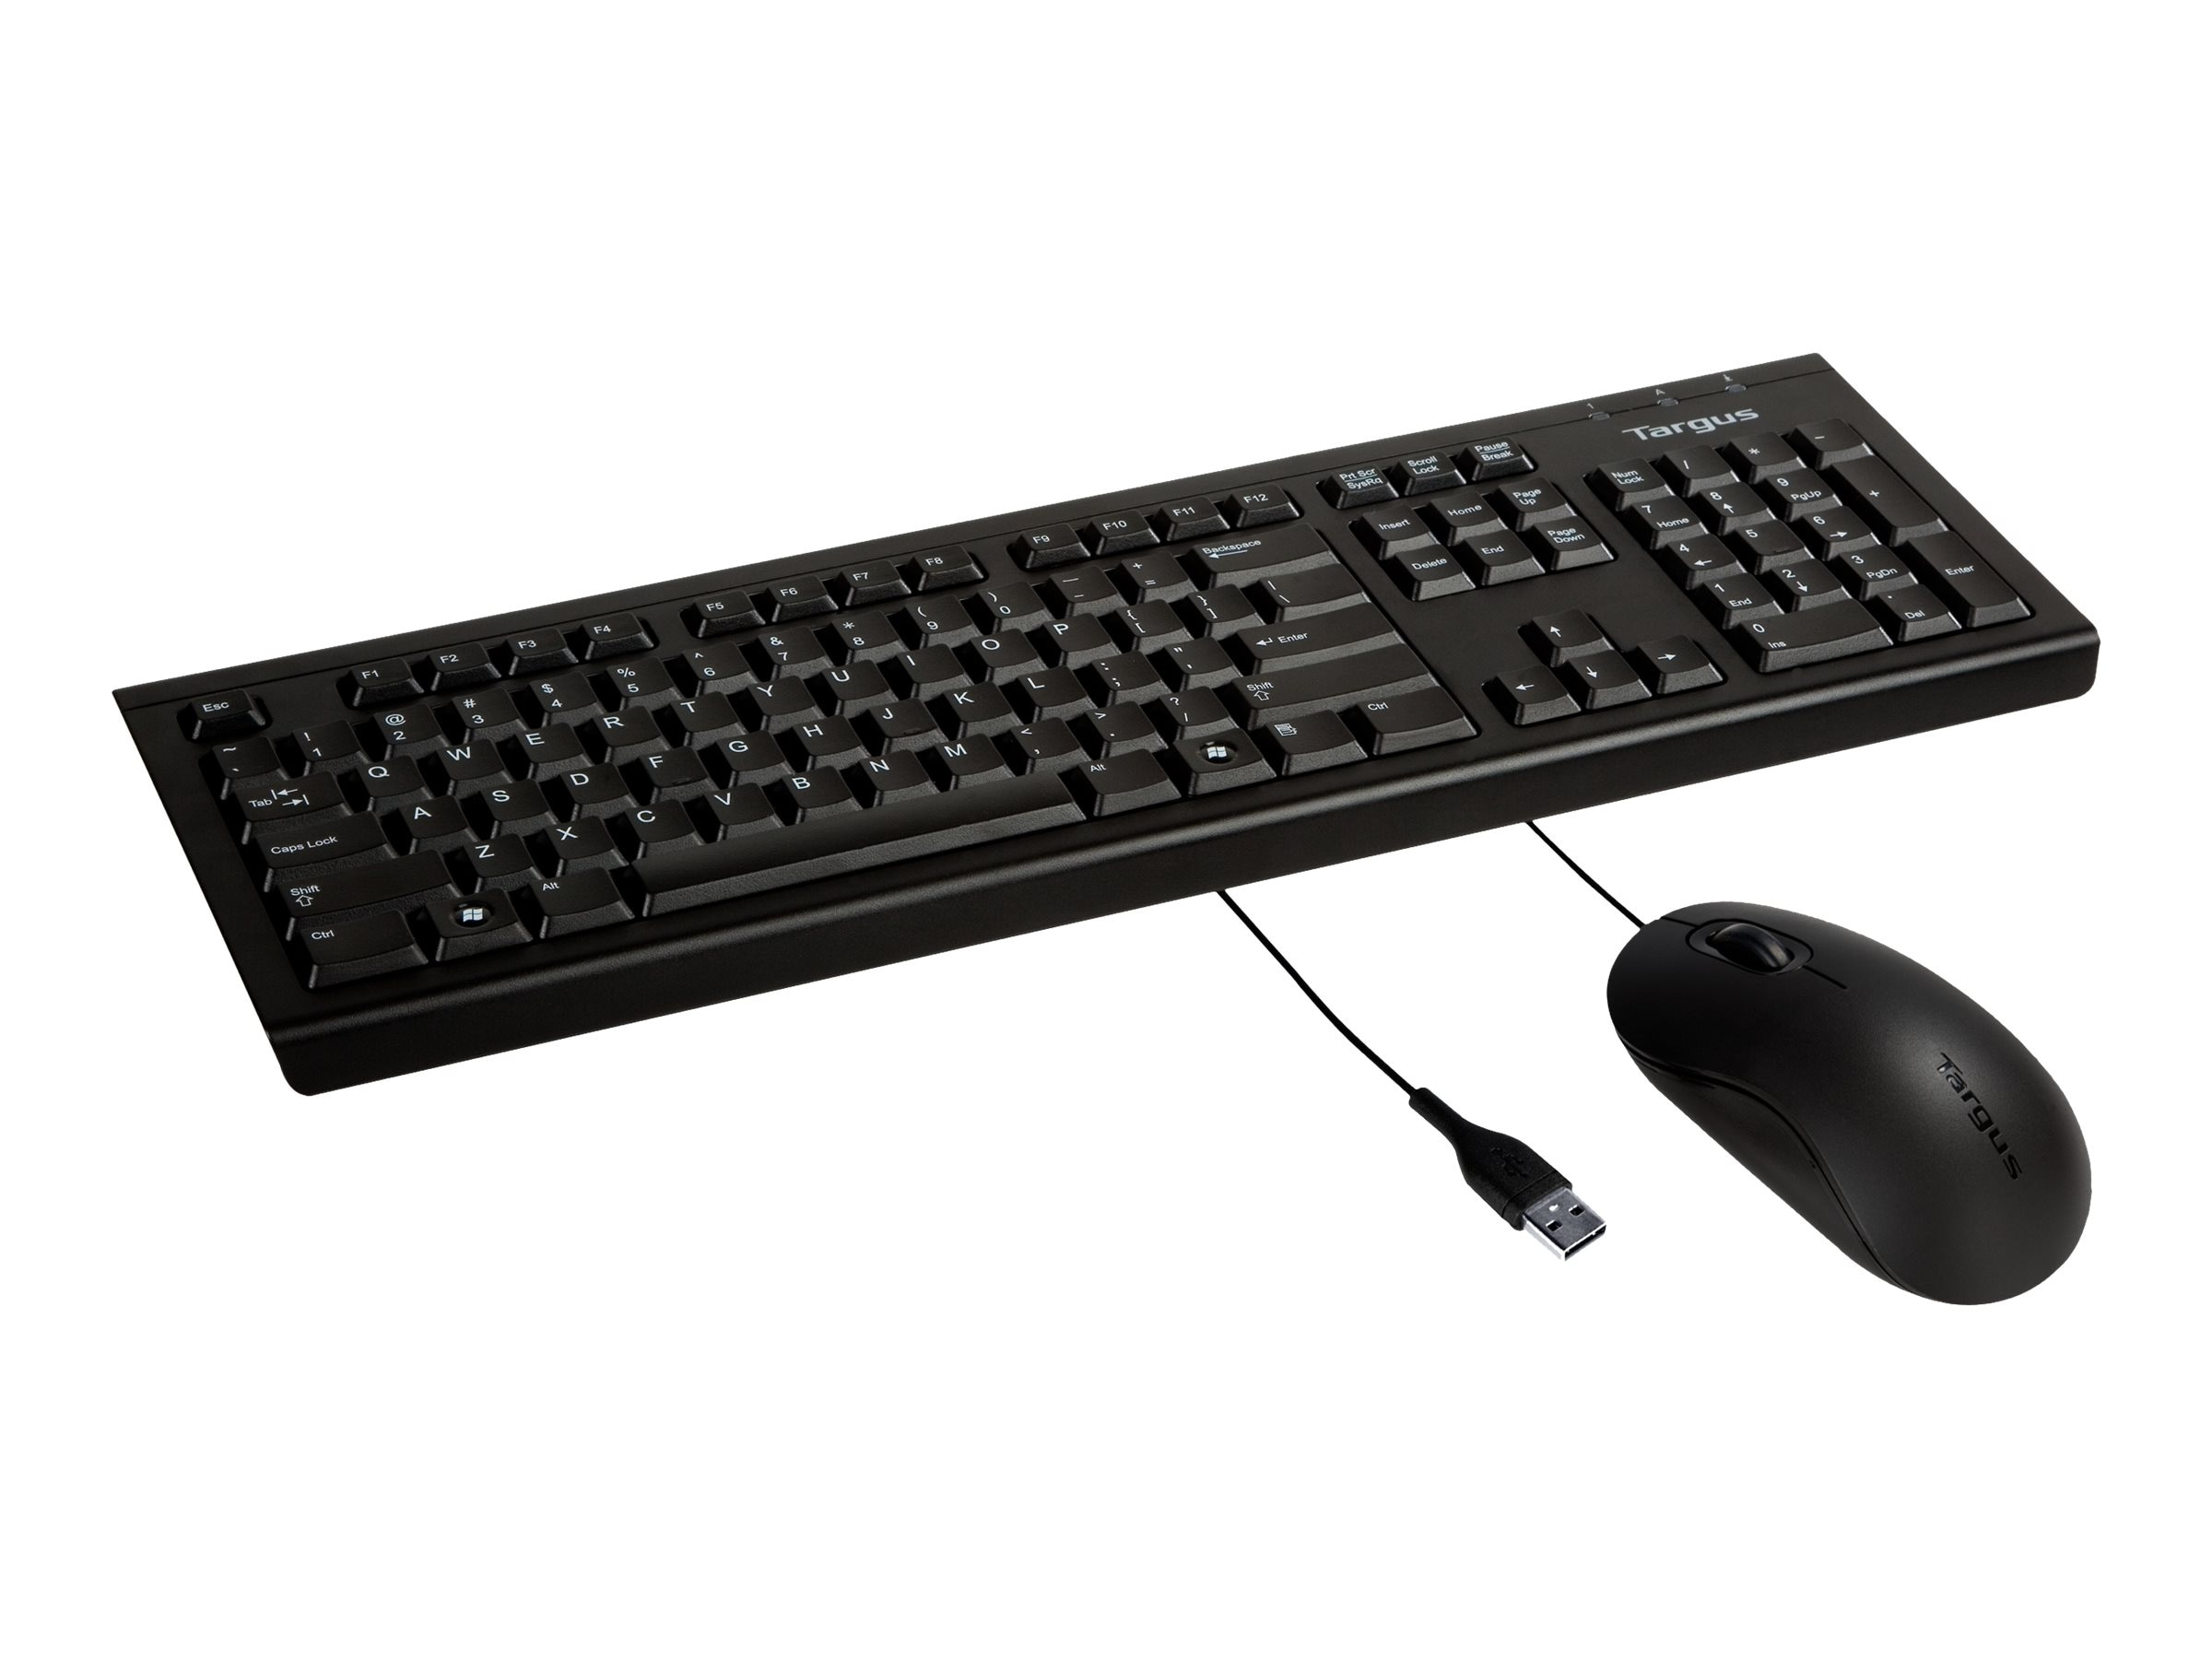 Targus Corporate Keyboard plus 3-button USB Full Size Optical Mmouse